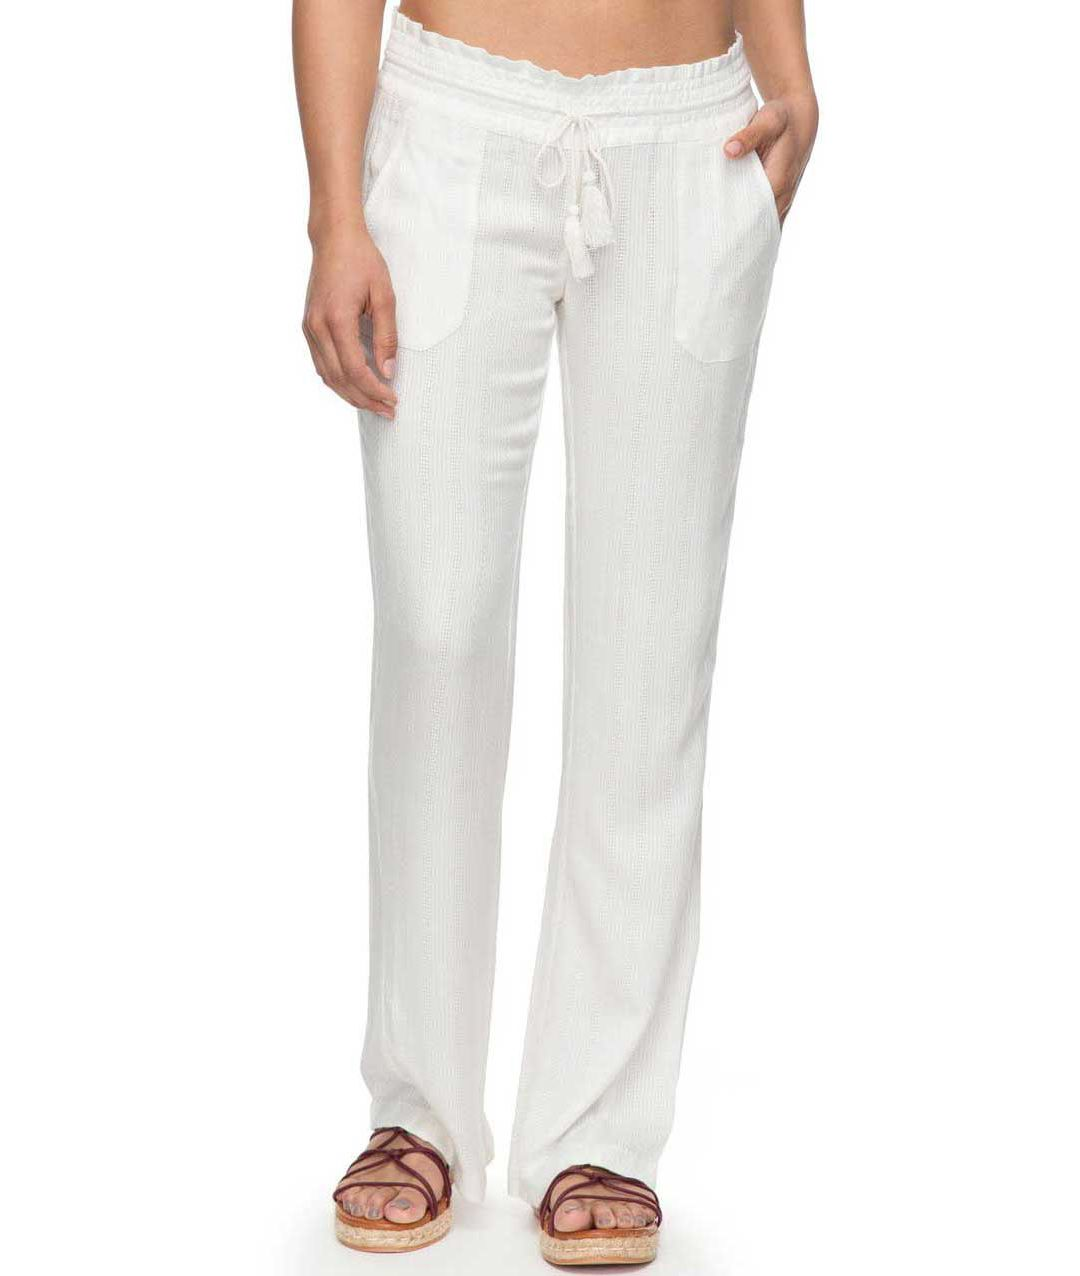 00cc934cc88a8d Roxy Women's Oceanside Vicose Pant | DICK'S Sporting Goods